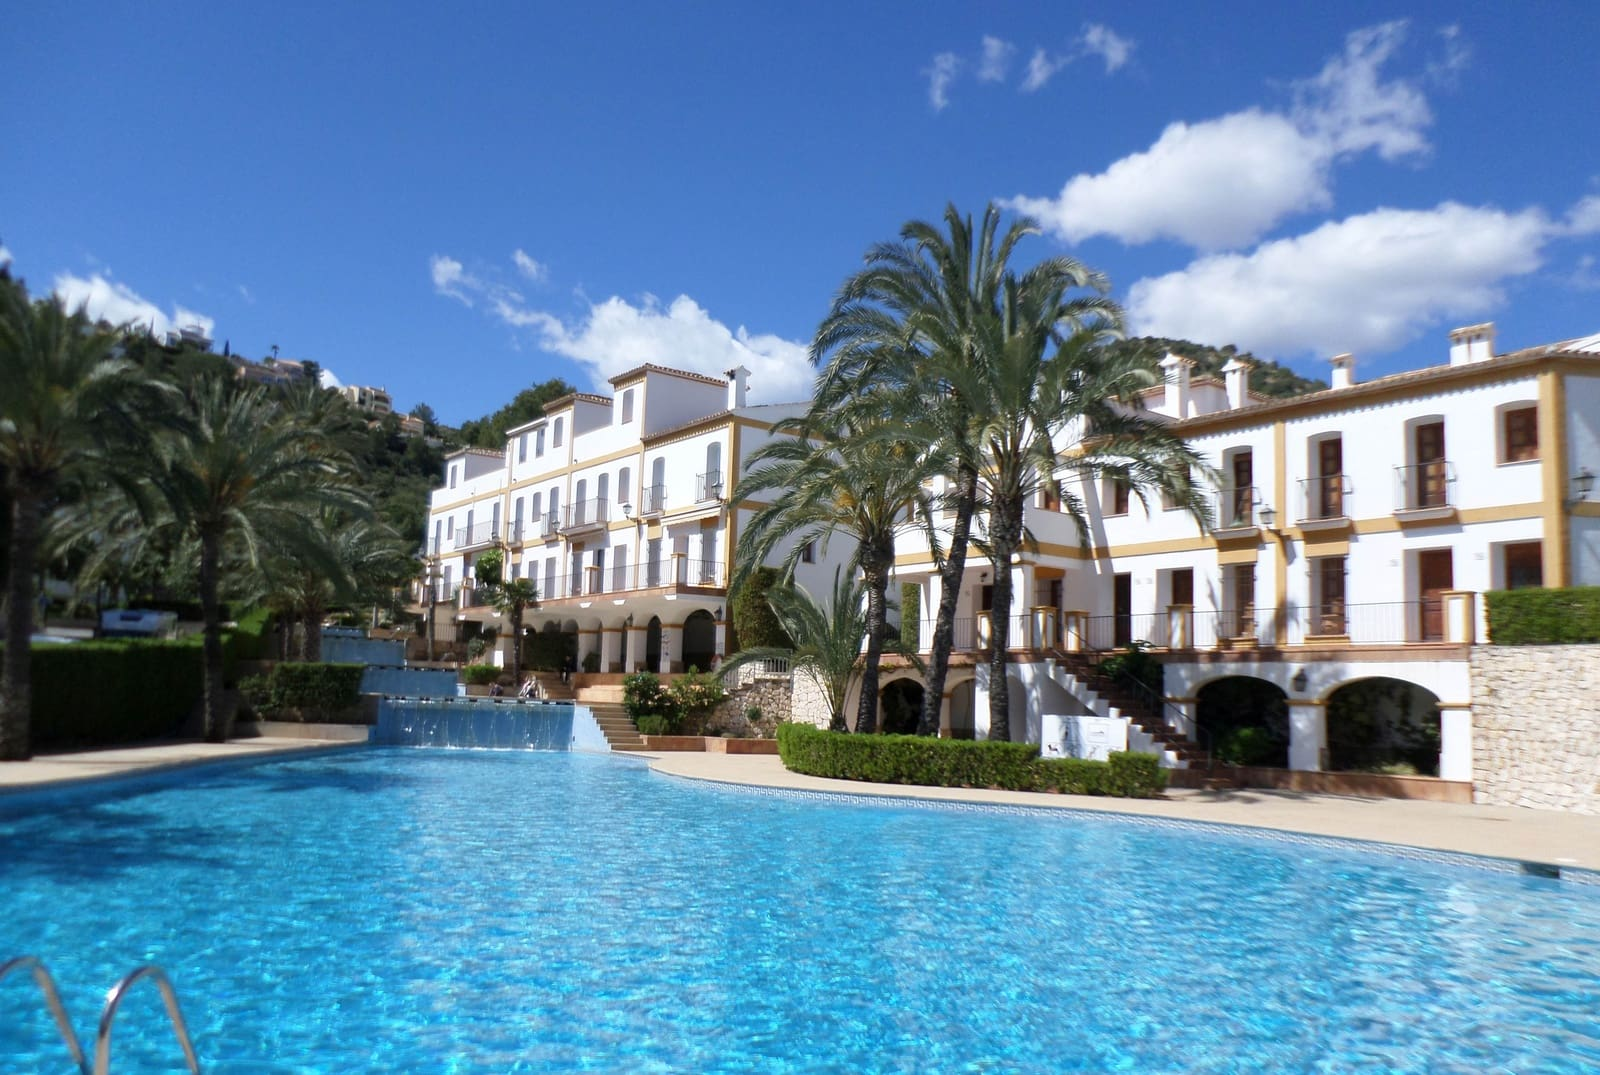 1 bedroom Apartment for sale in La Sella with pool - € 85,000 (Ref: 4751749)